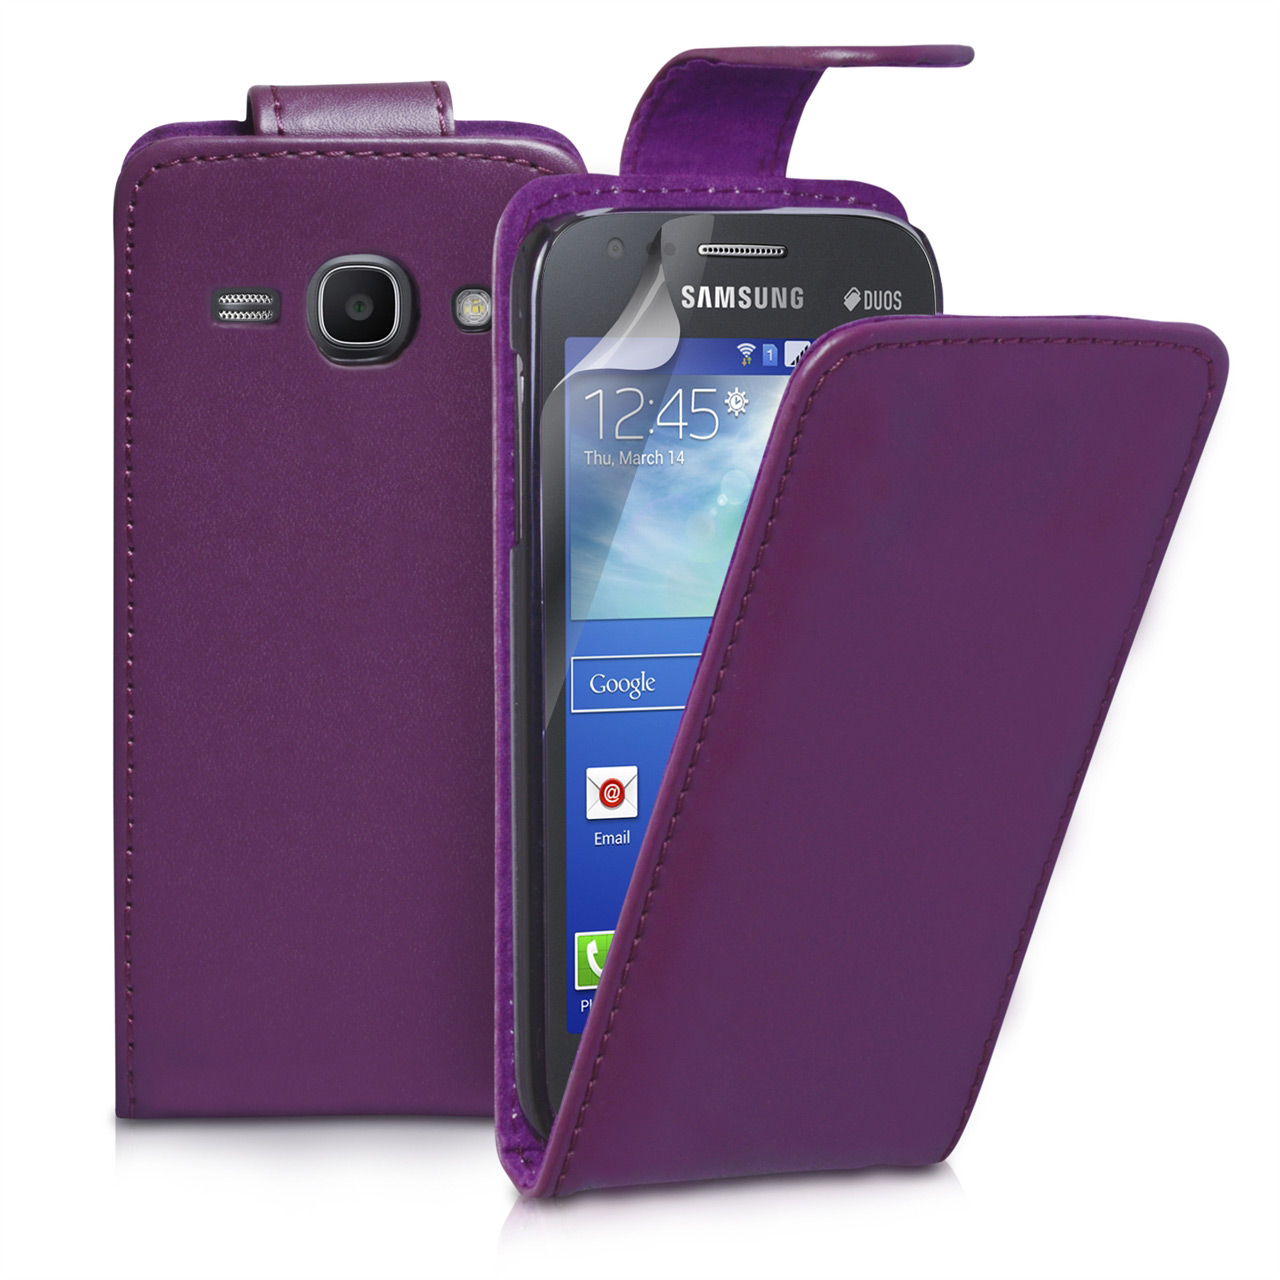 YouSave Samsung Galaxy Ace 3 Leather-Effect Flip Case - Purple